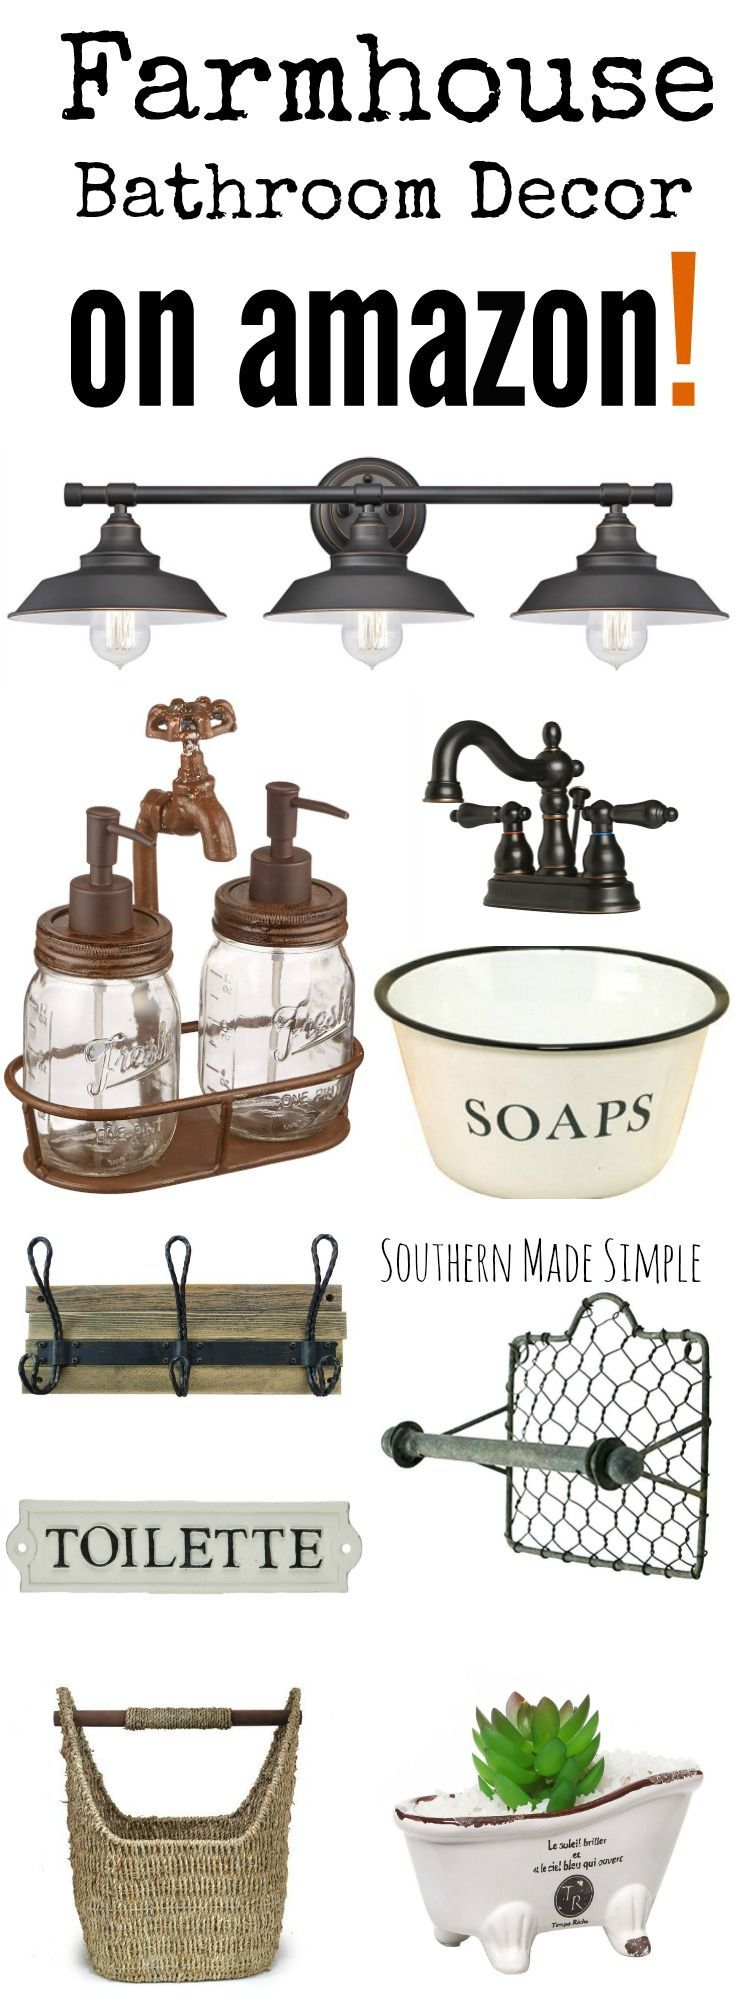 best 25 decorating bathrooms ideas on pinterest restroom ideas 14 farmhouse bathroom finds on amazon farmhouse bathroomsfarmhouse kitchensfarmhouse bathroom accessoriescabin bathroom decorrustic